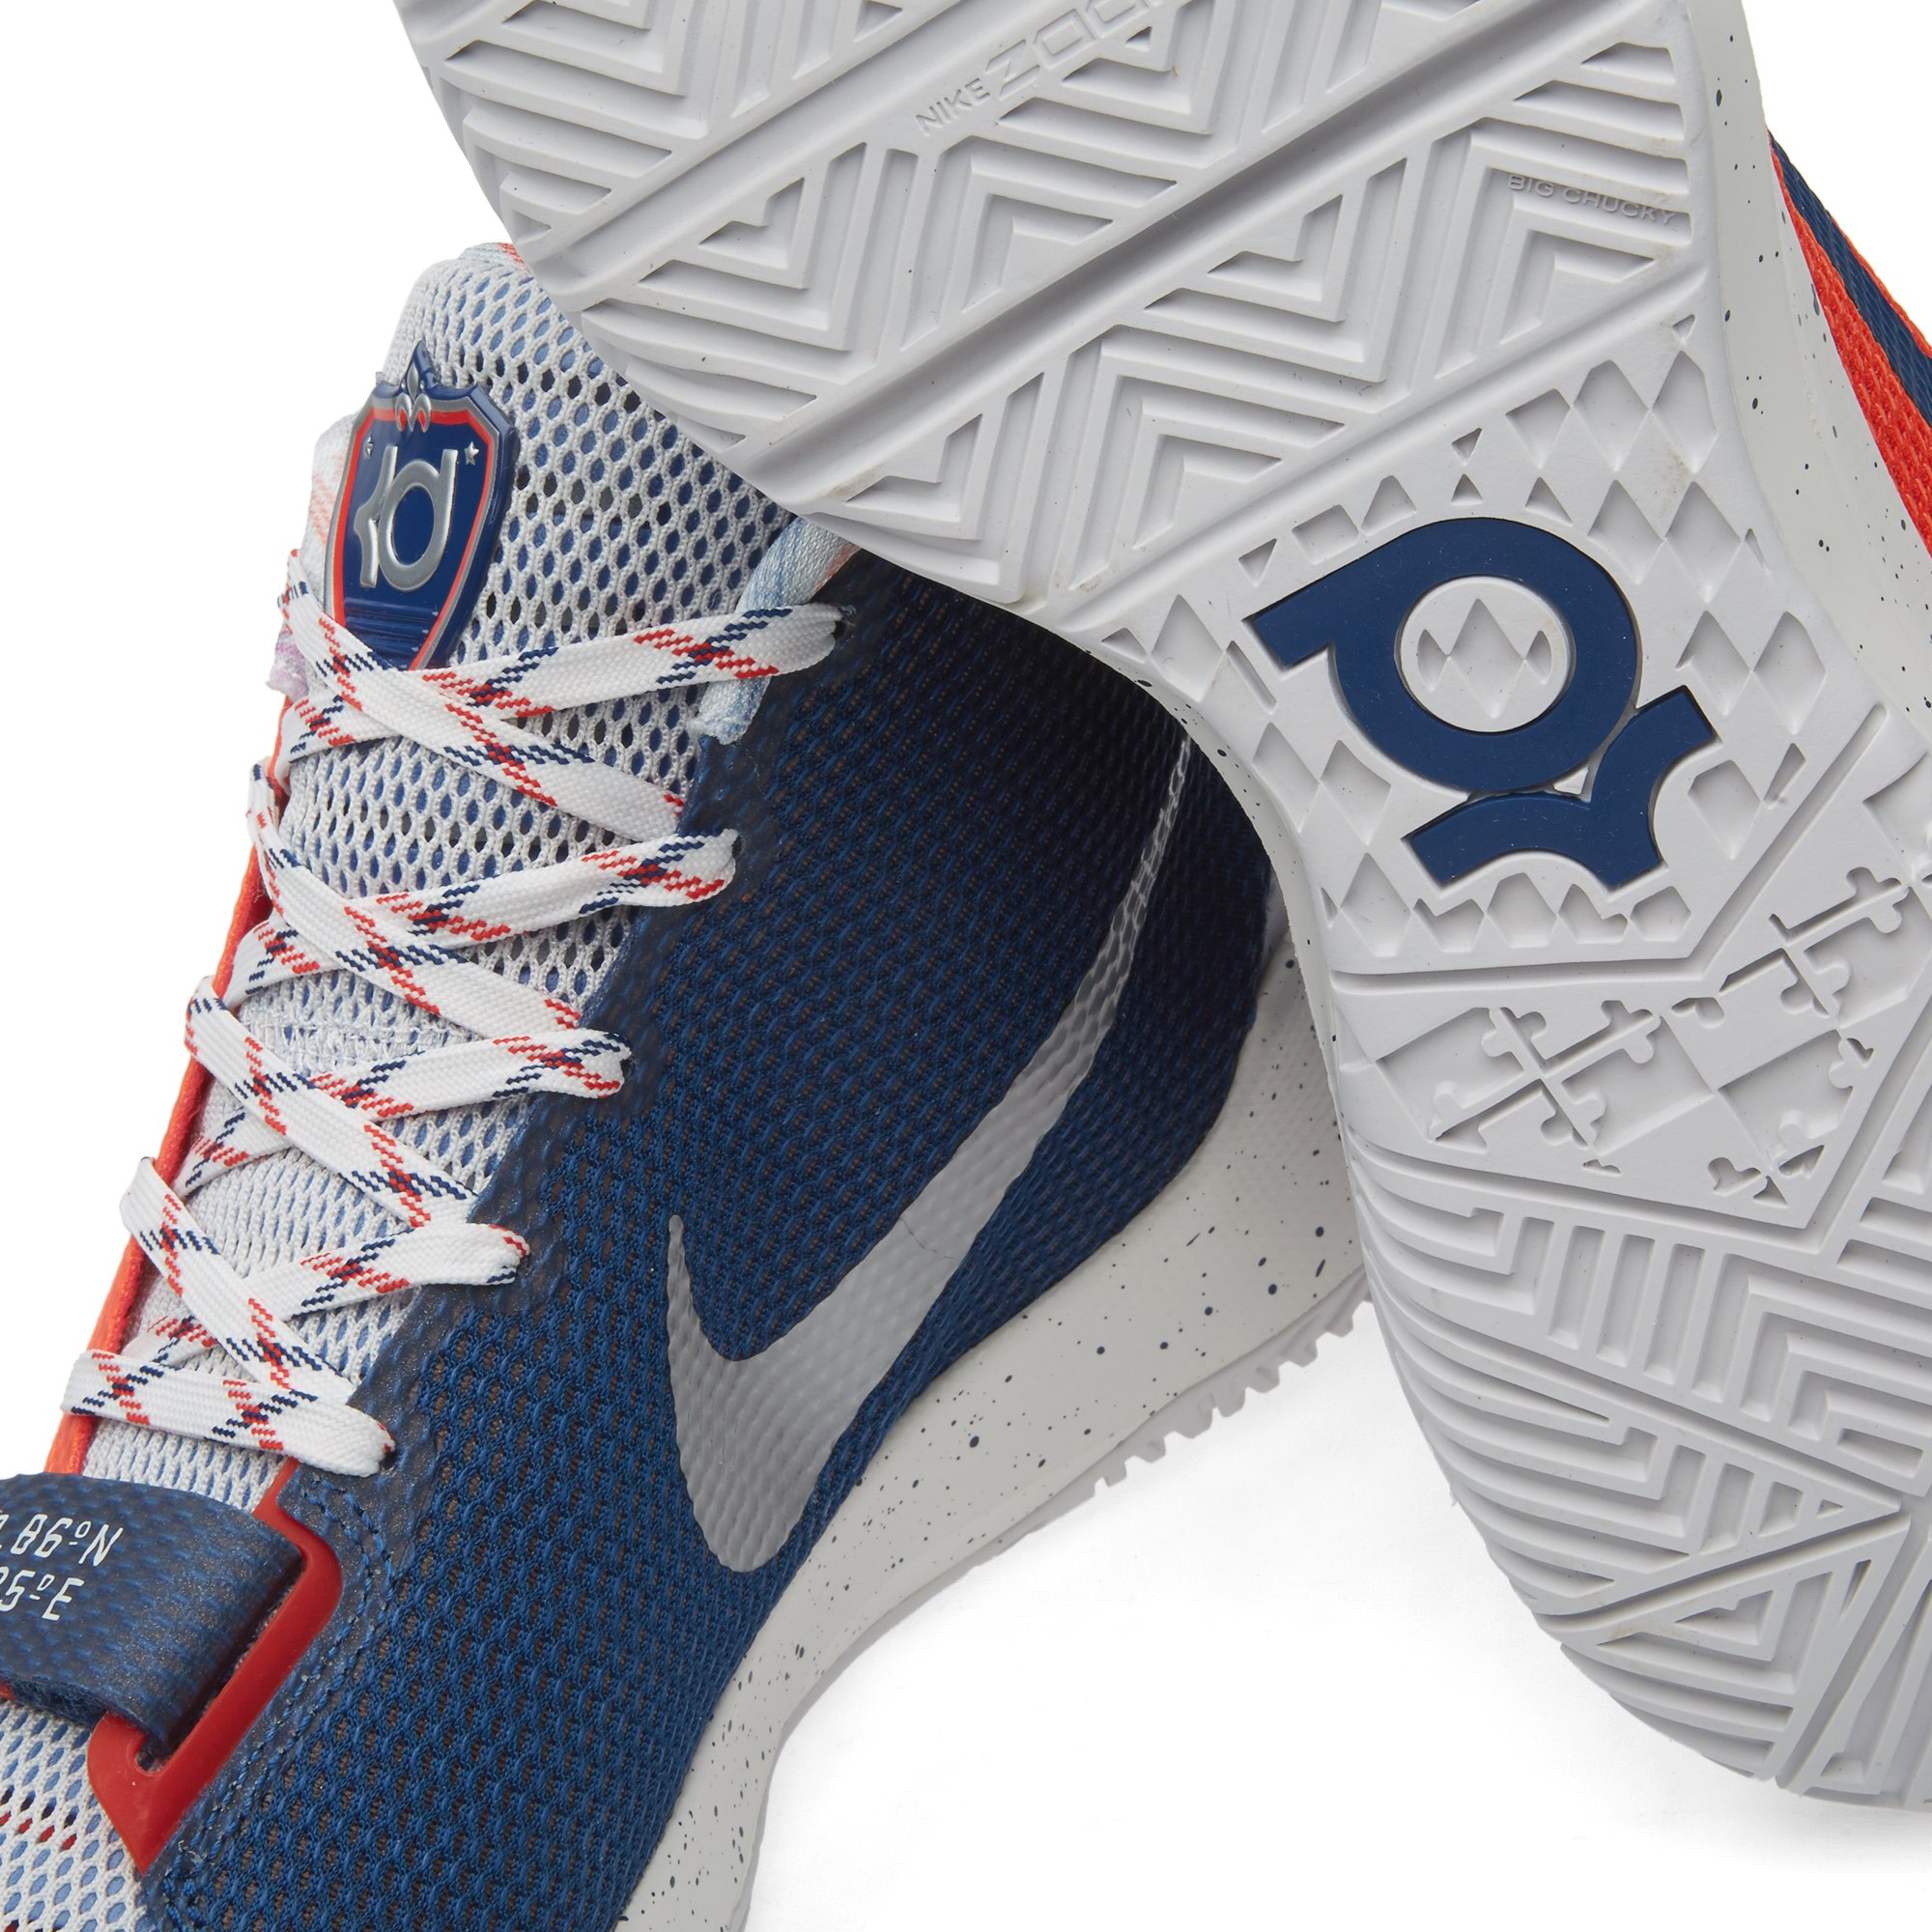 new arrivals 7ee3c 59e2e New Nike KD Trey 5 V Men s Basketball Boots